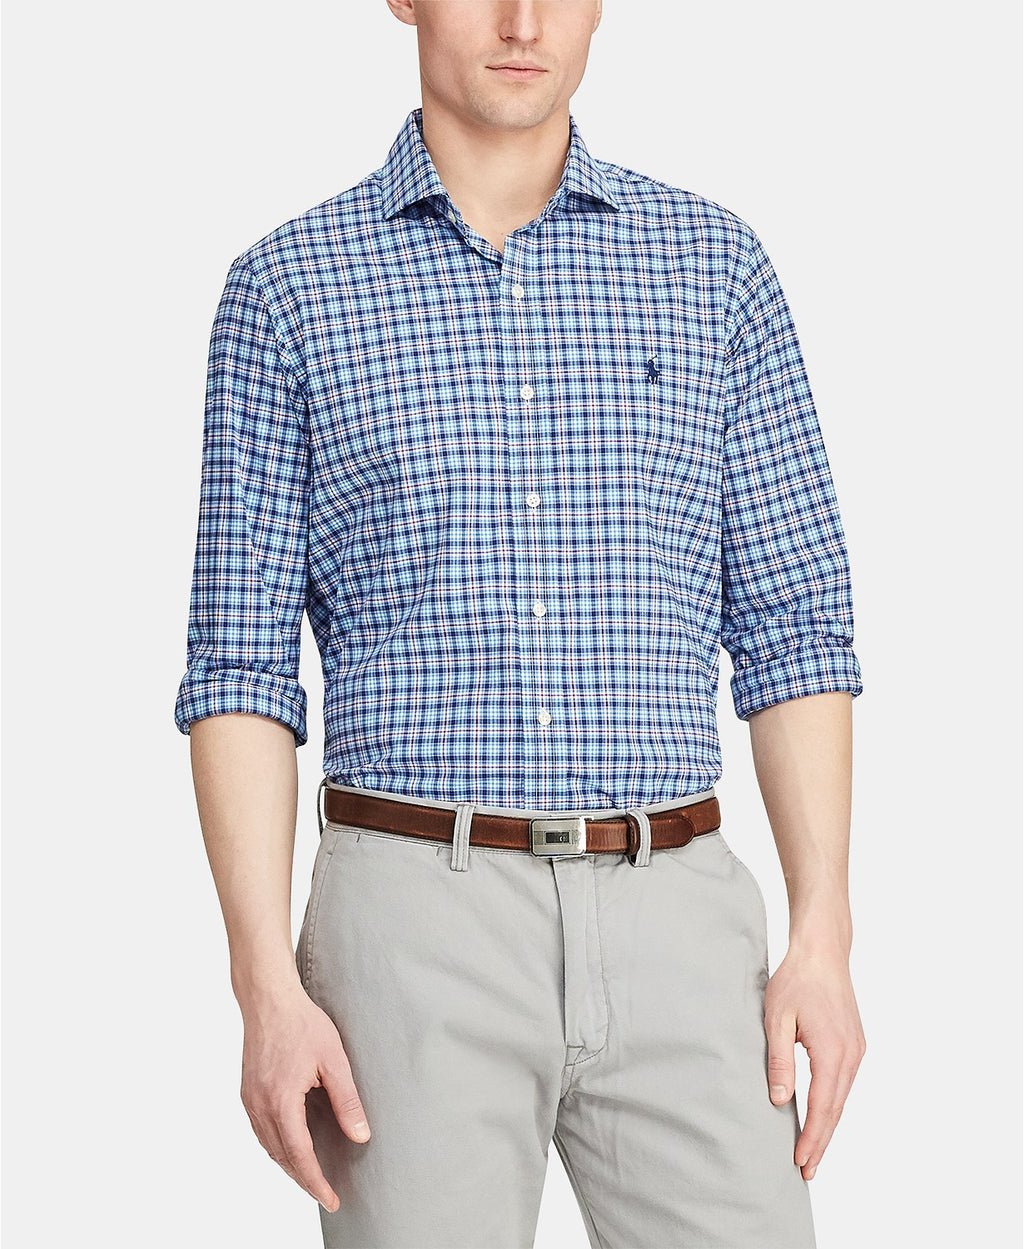 POLO RALPH LAUREN MEN'S CLASSIC FIT PLAID SPORT SHIRT